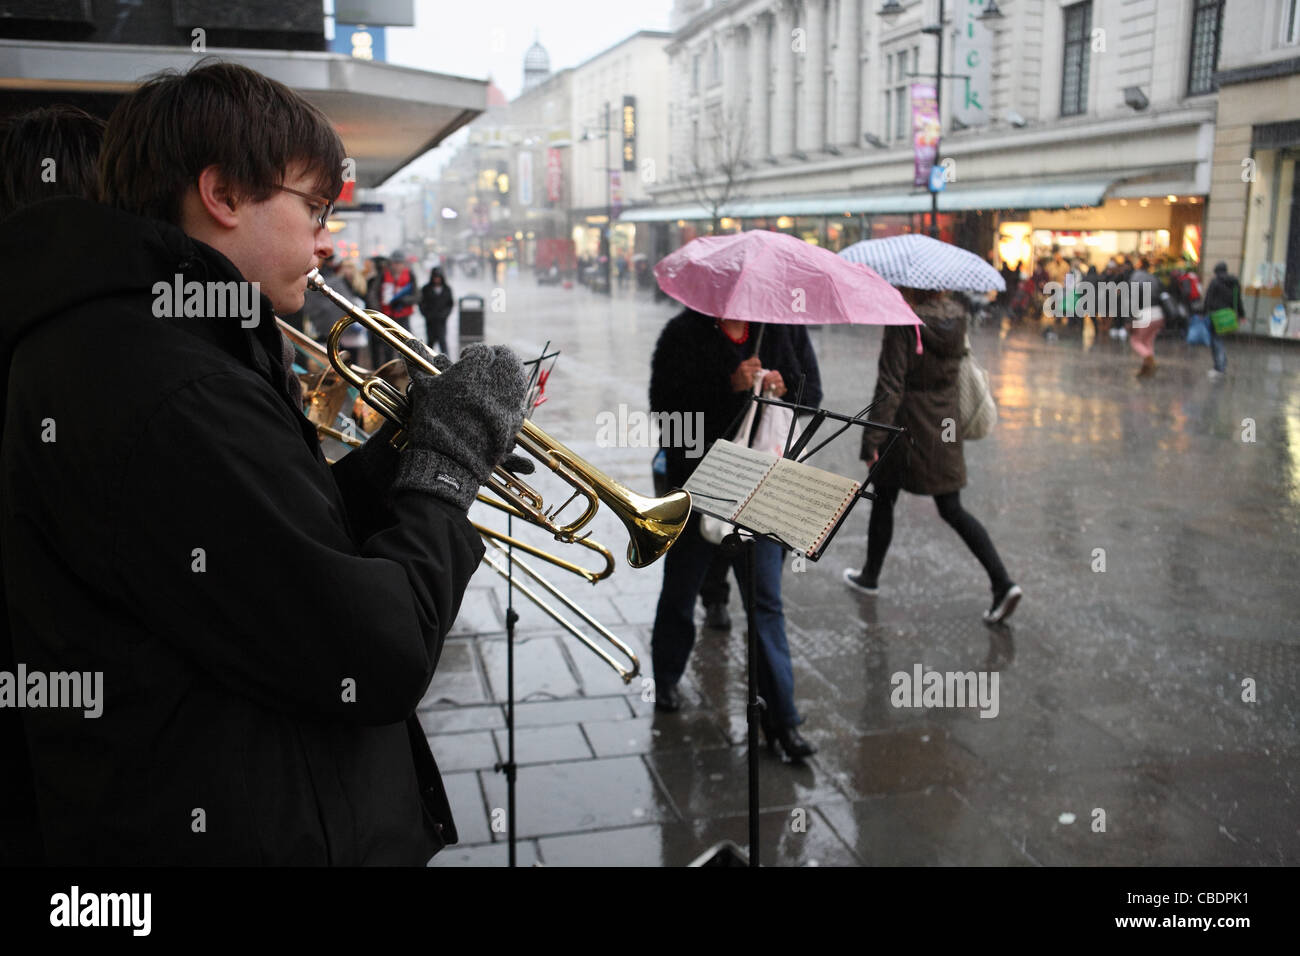 Buskers play xmas carols while people with umbrellas walk past in heavy rain Northumberland St, Newcastle. Stock Photo